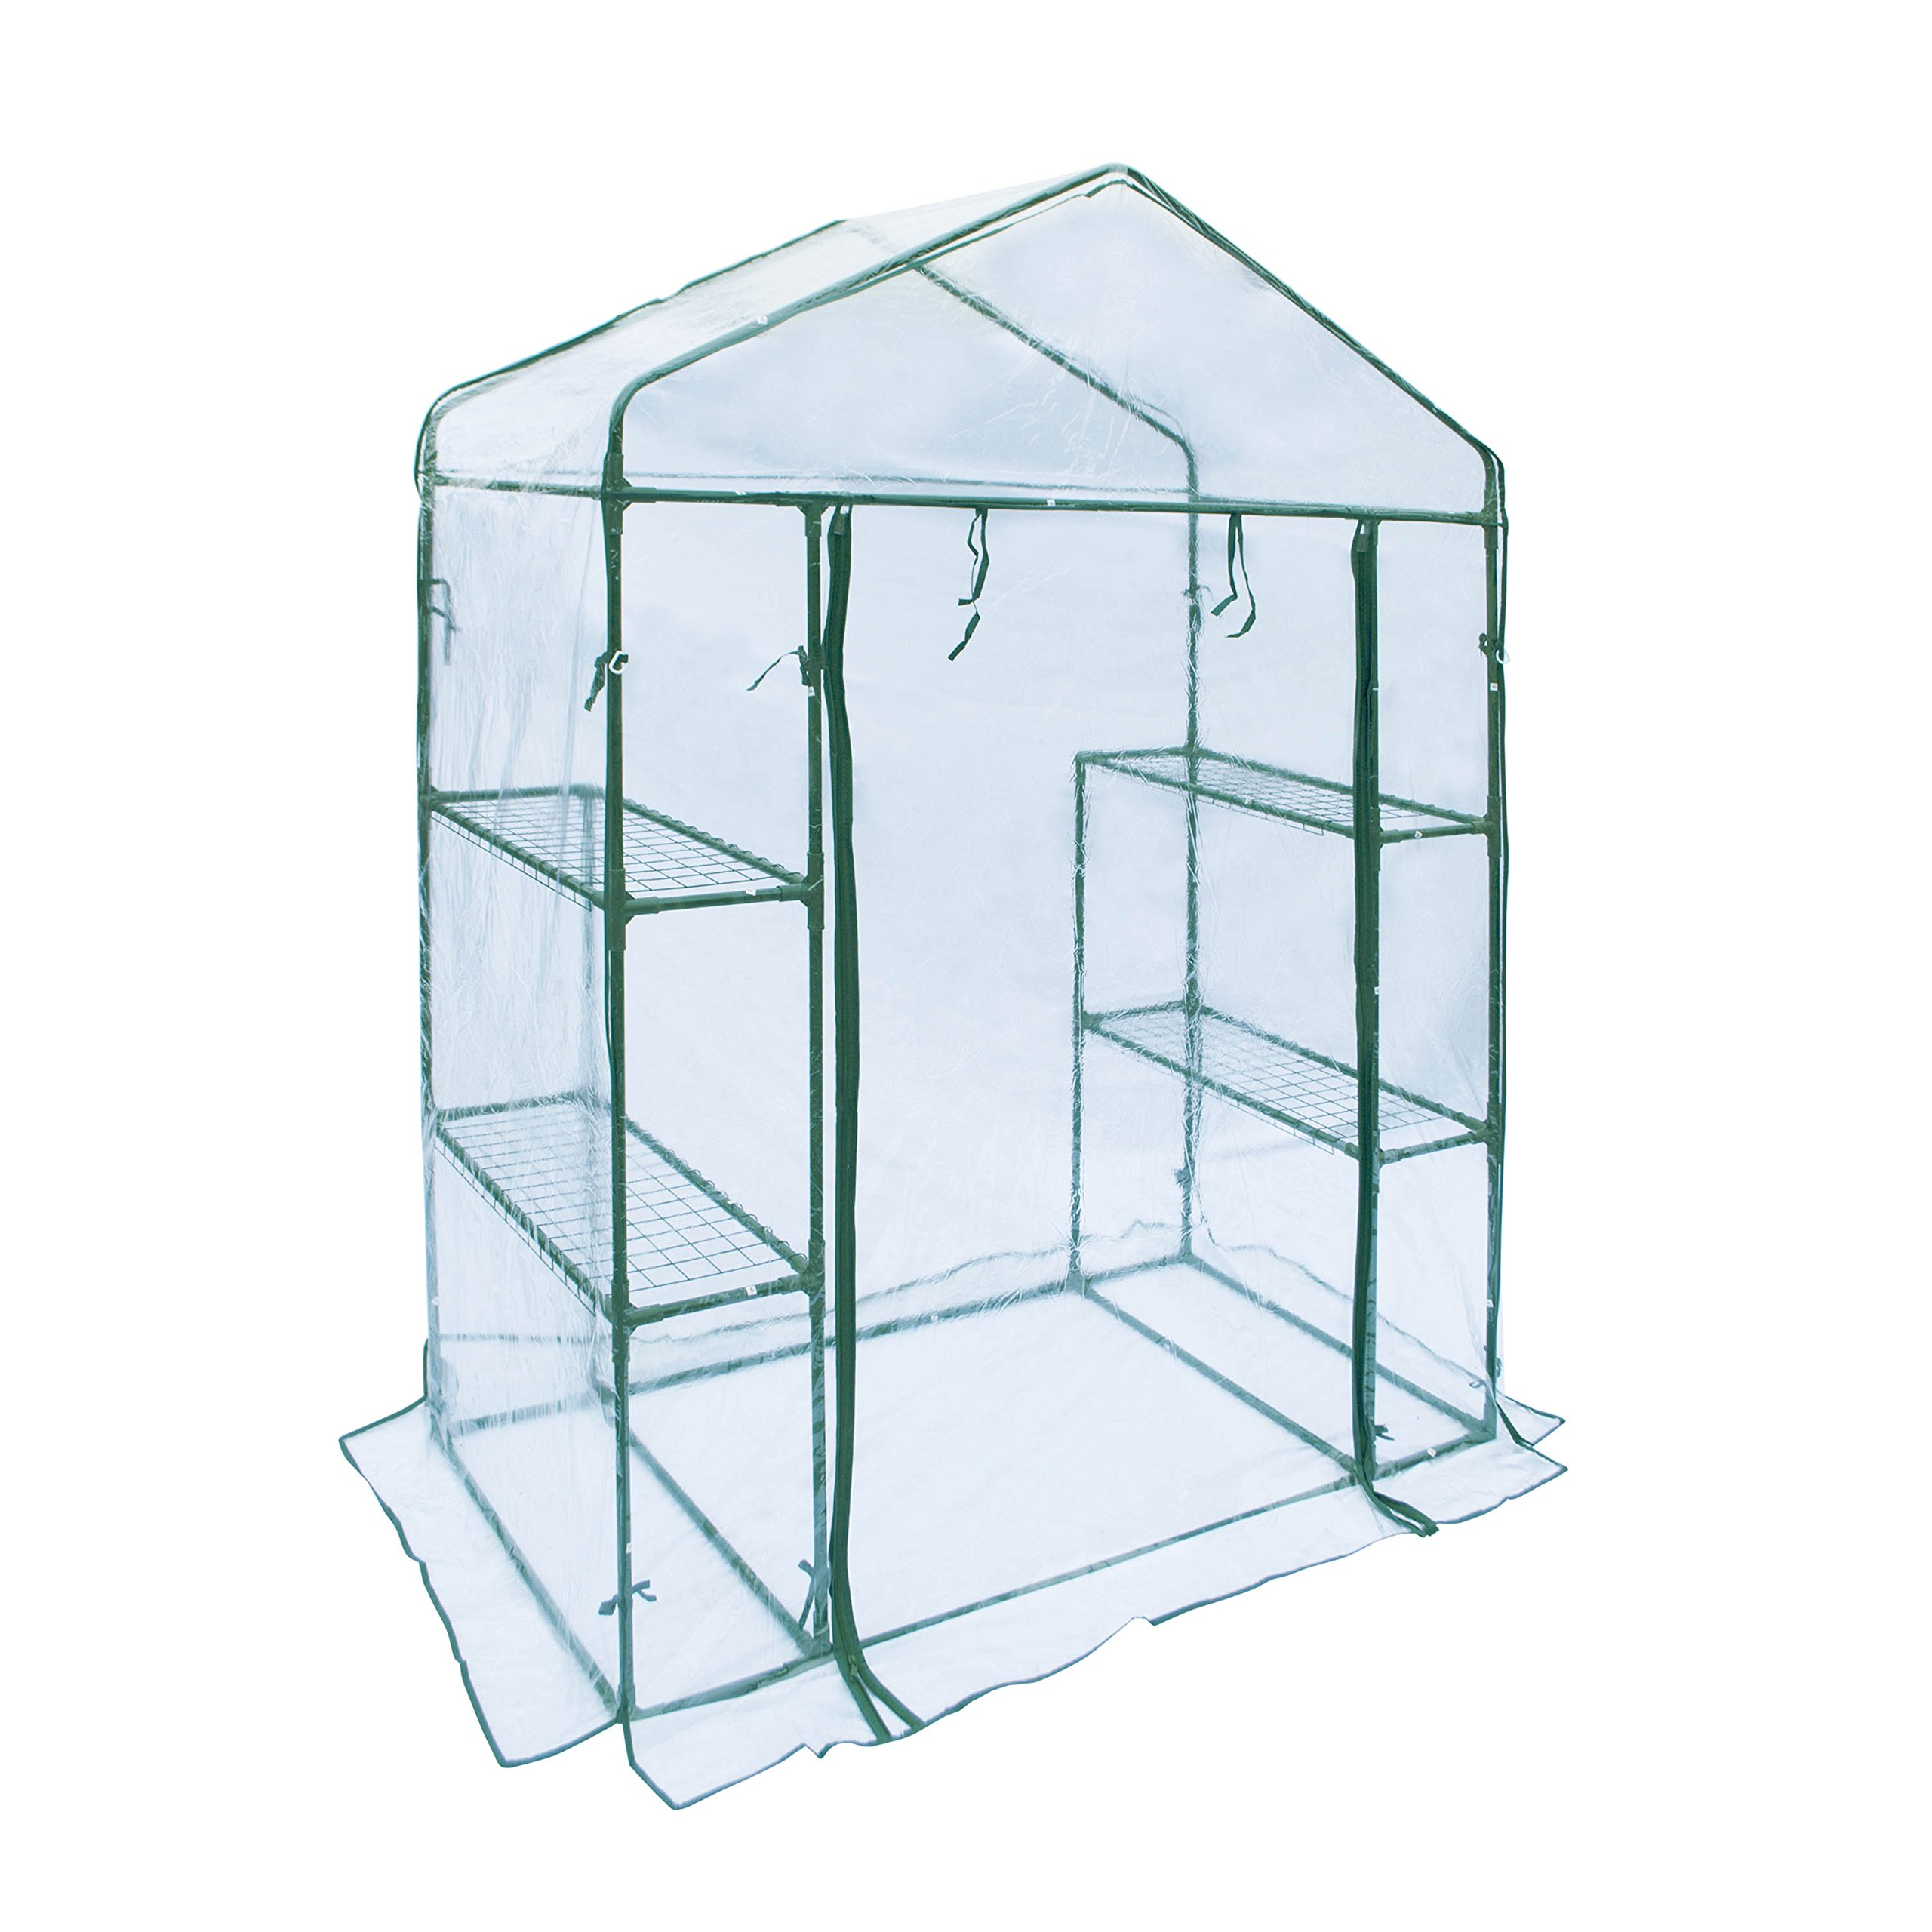 ALEKO GHTR56X29X77 Transparent Walk In 4 Shelves Garden Plant Outdoor Greenhouse Shed 56X29X77 Inches